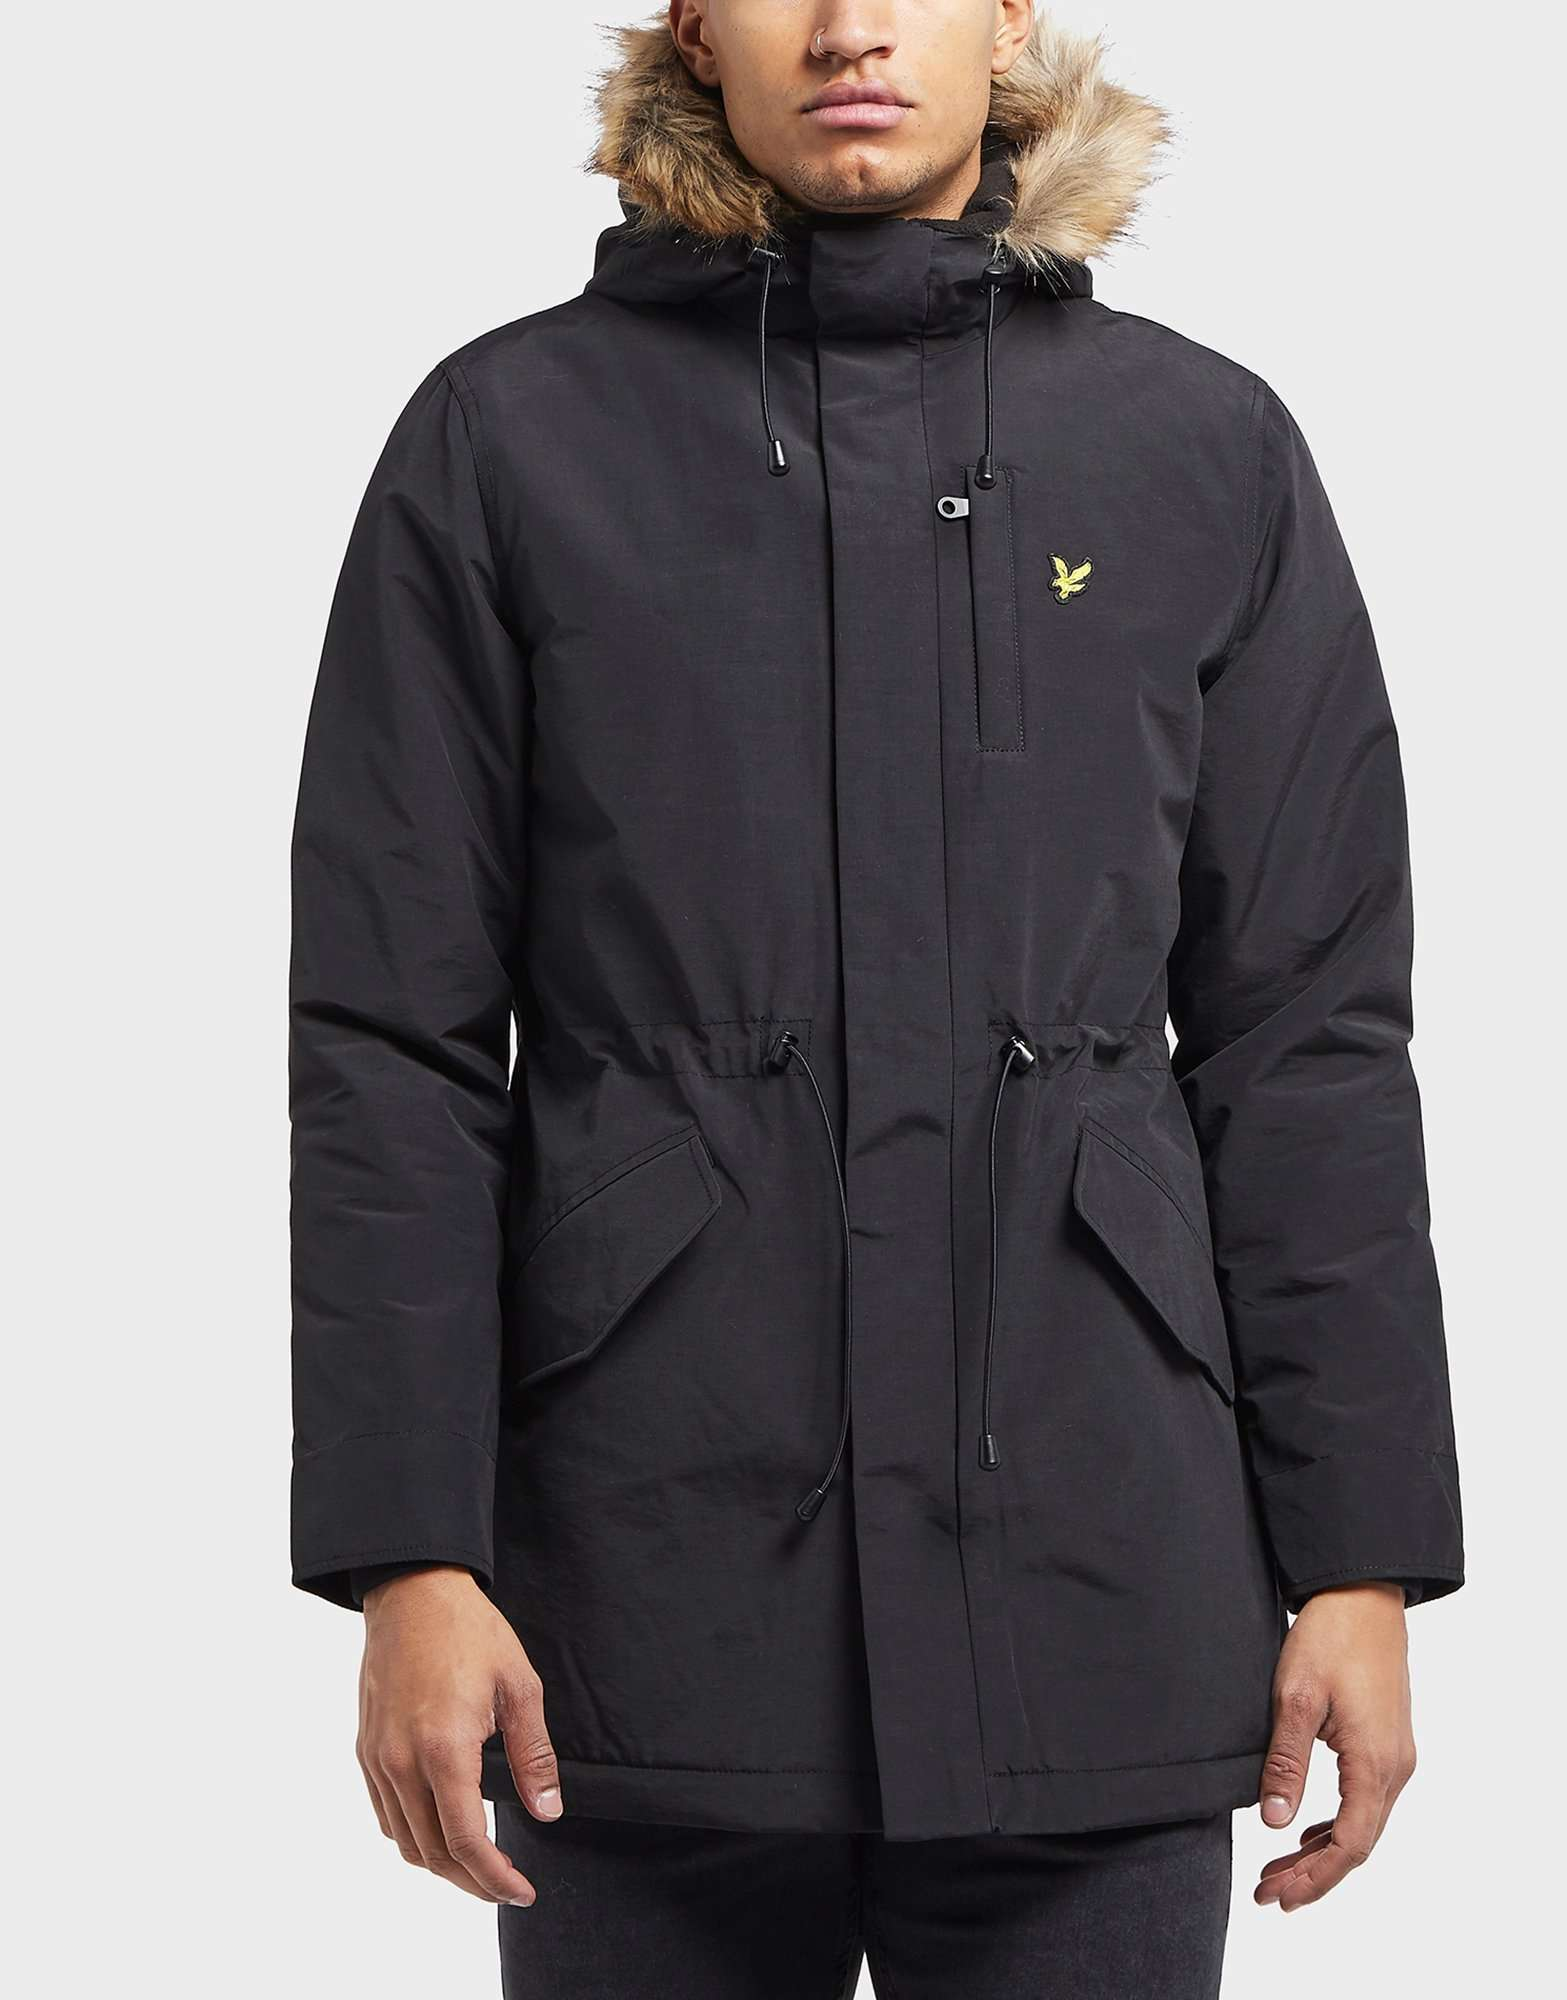 Lyle & Scott Fur Hood Padded Parka Jacket